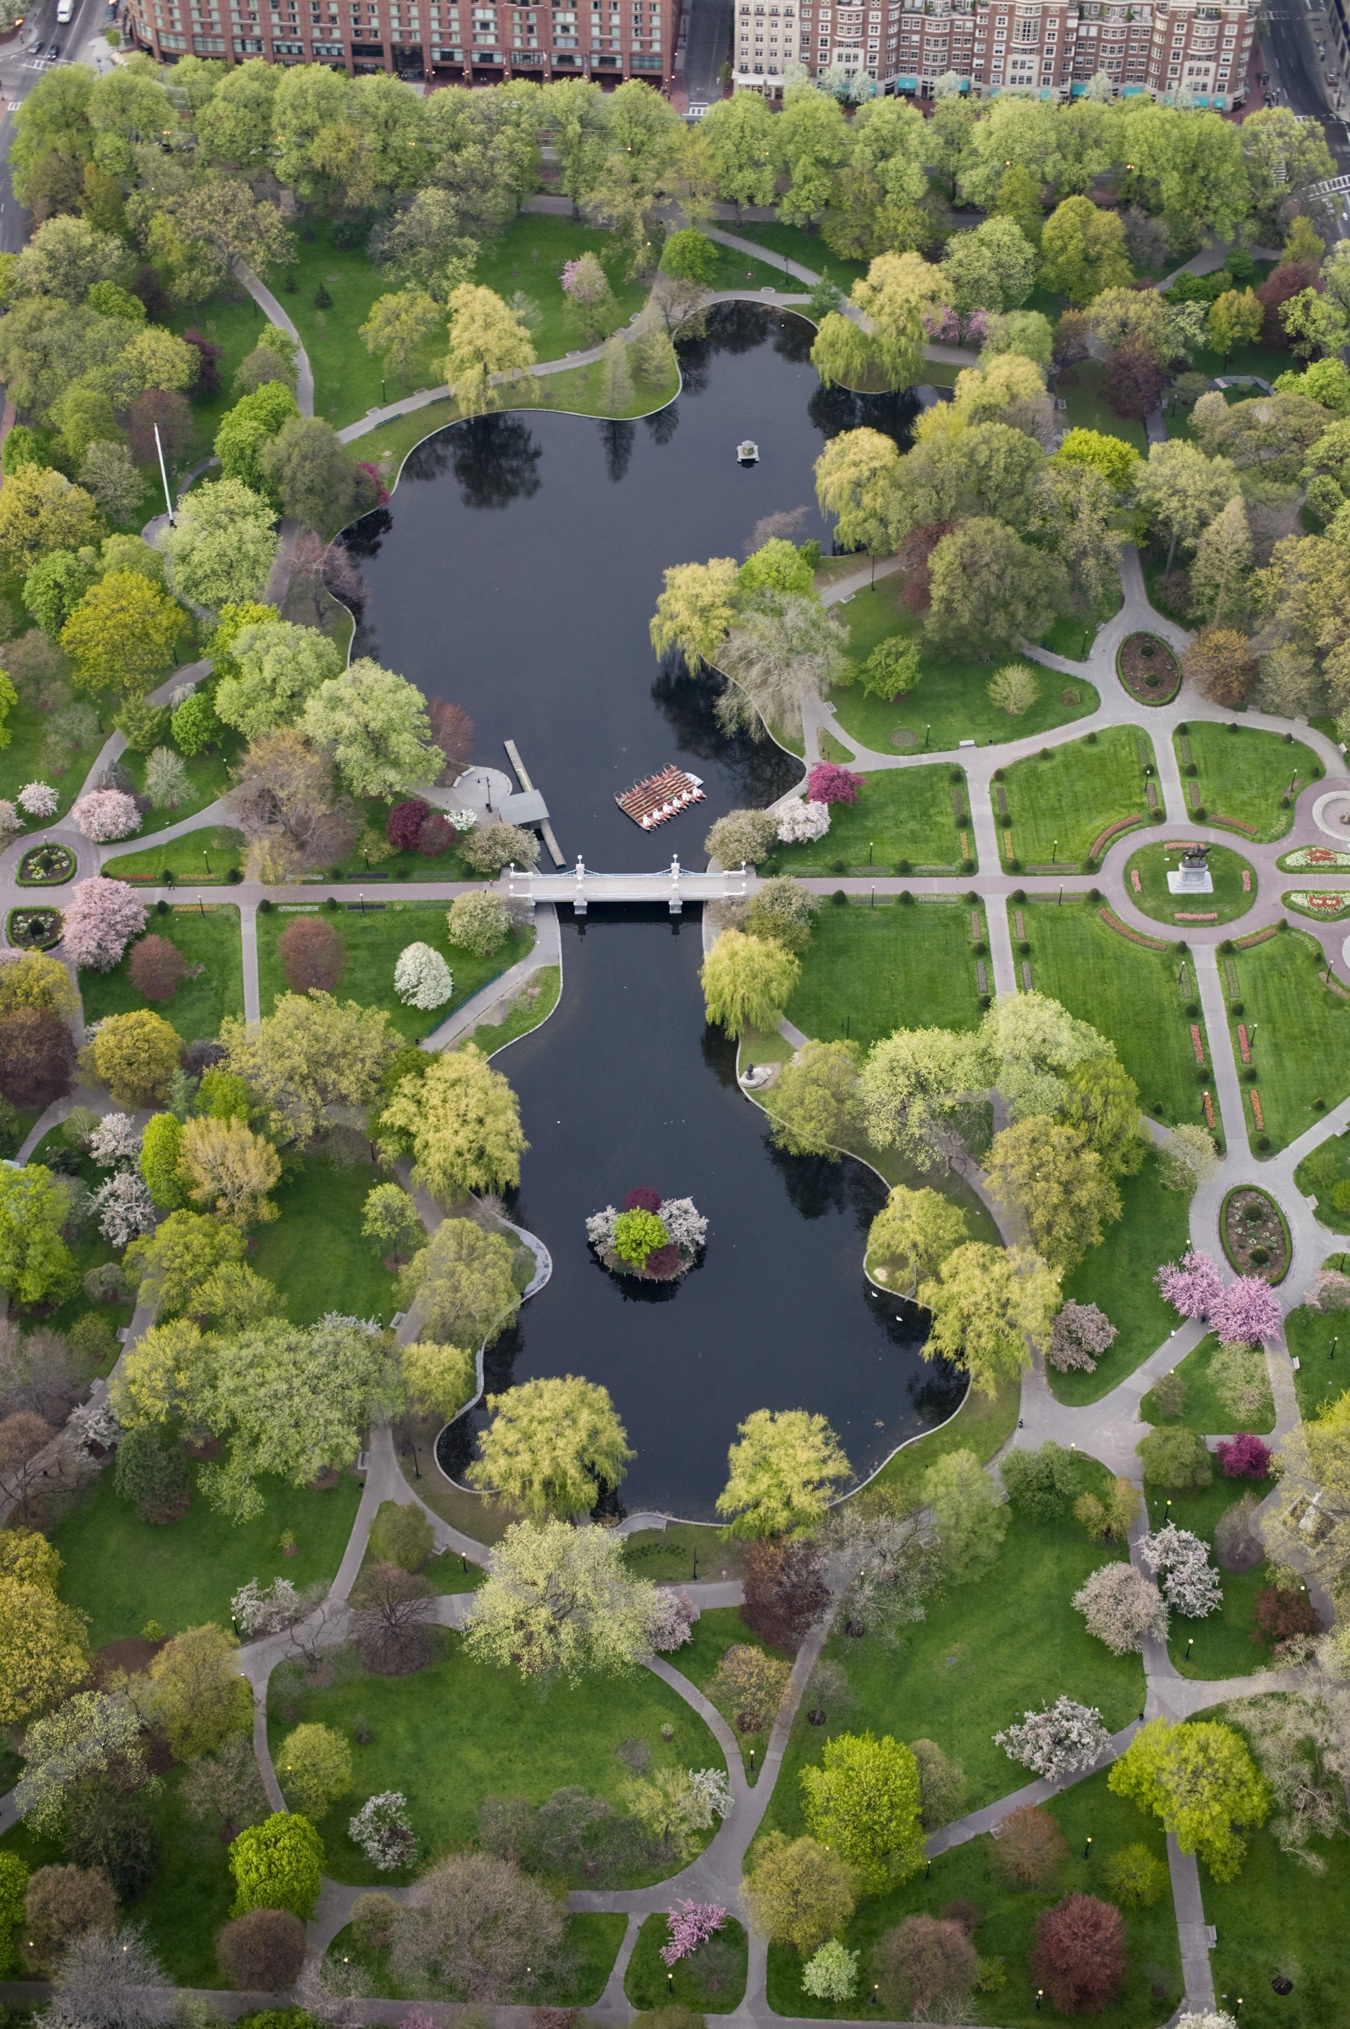 Aerial view of the garden (image from the Friends of the Public Garden)